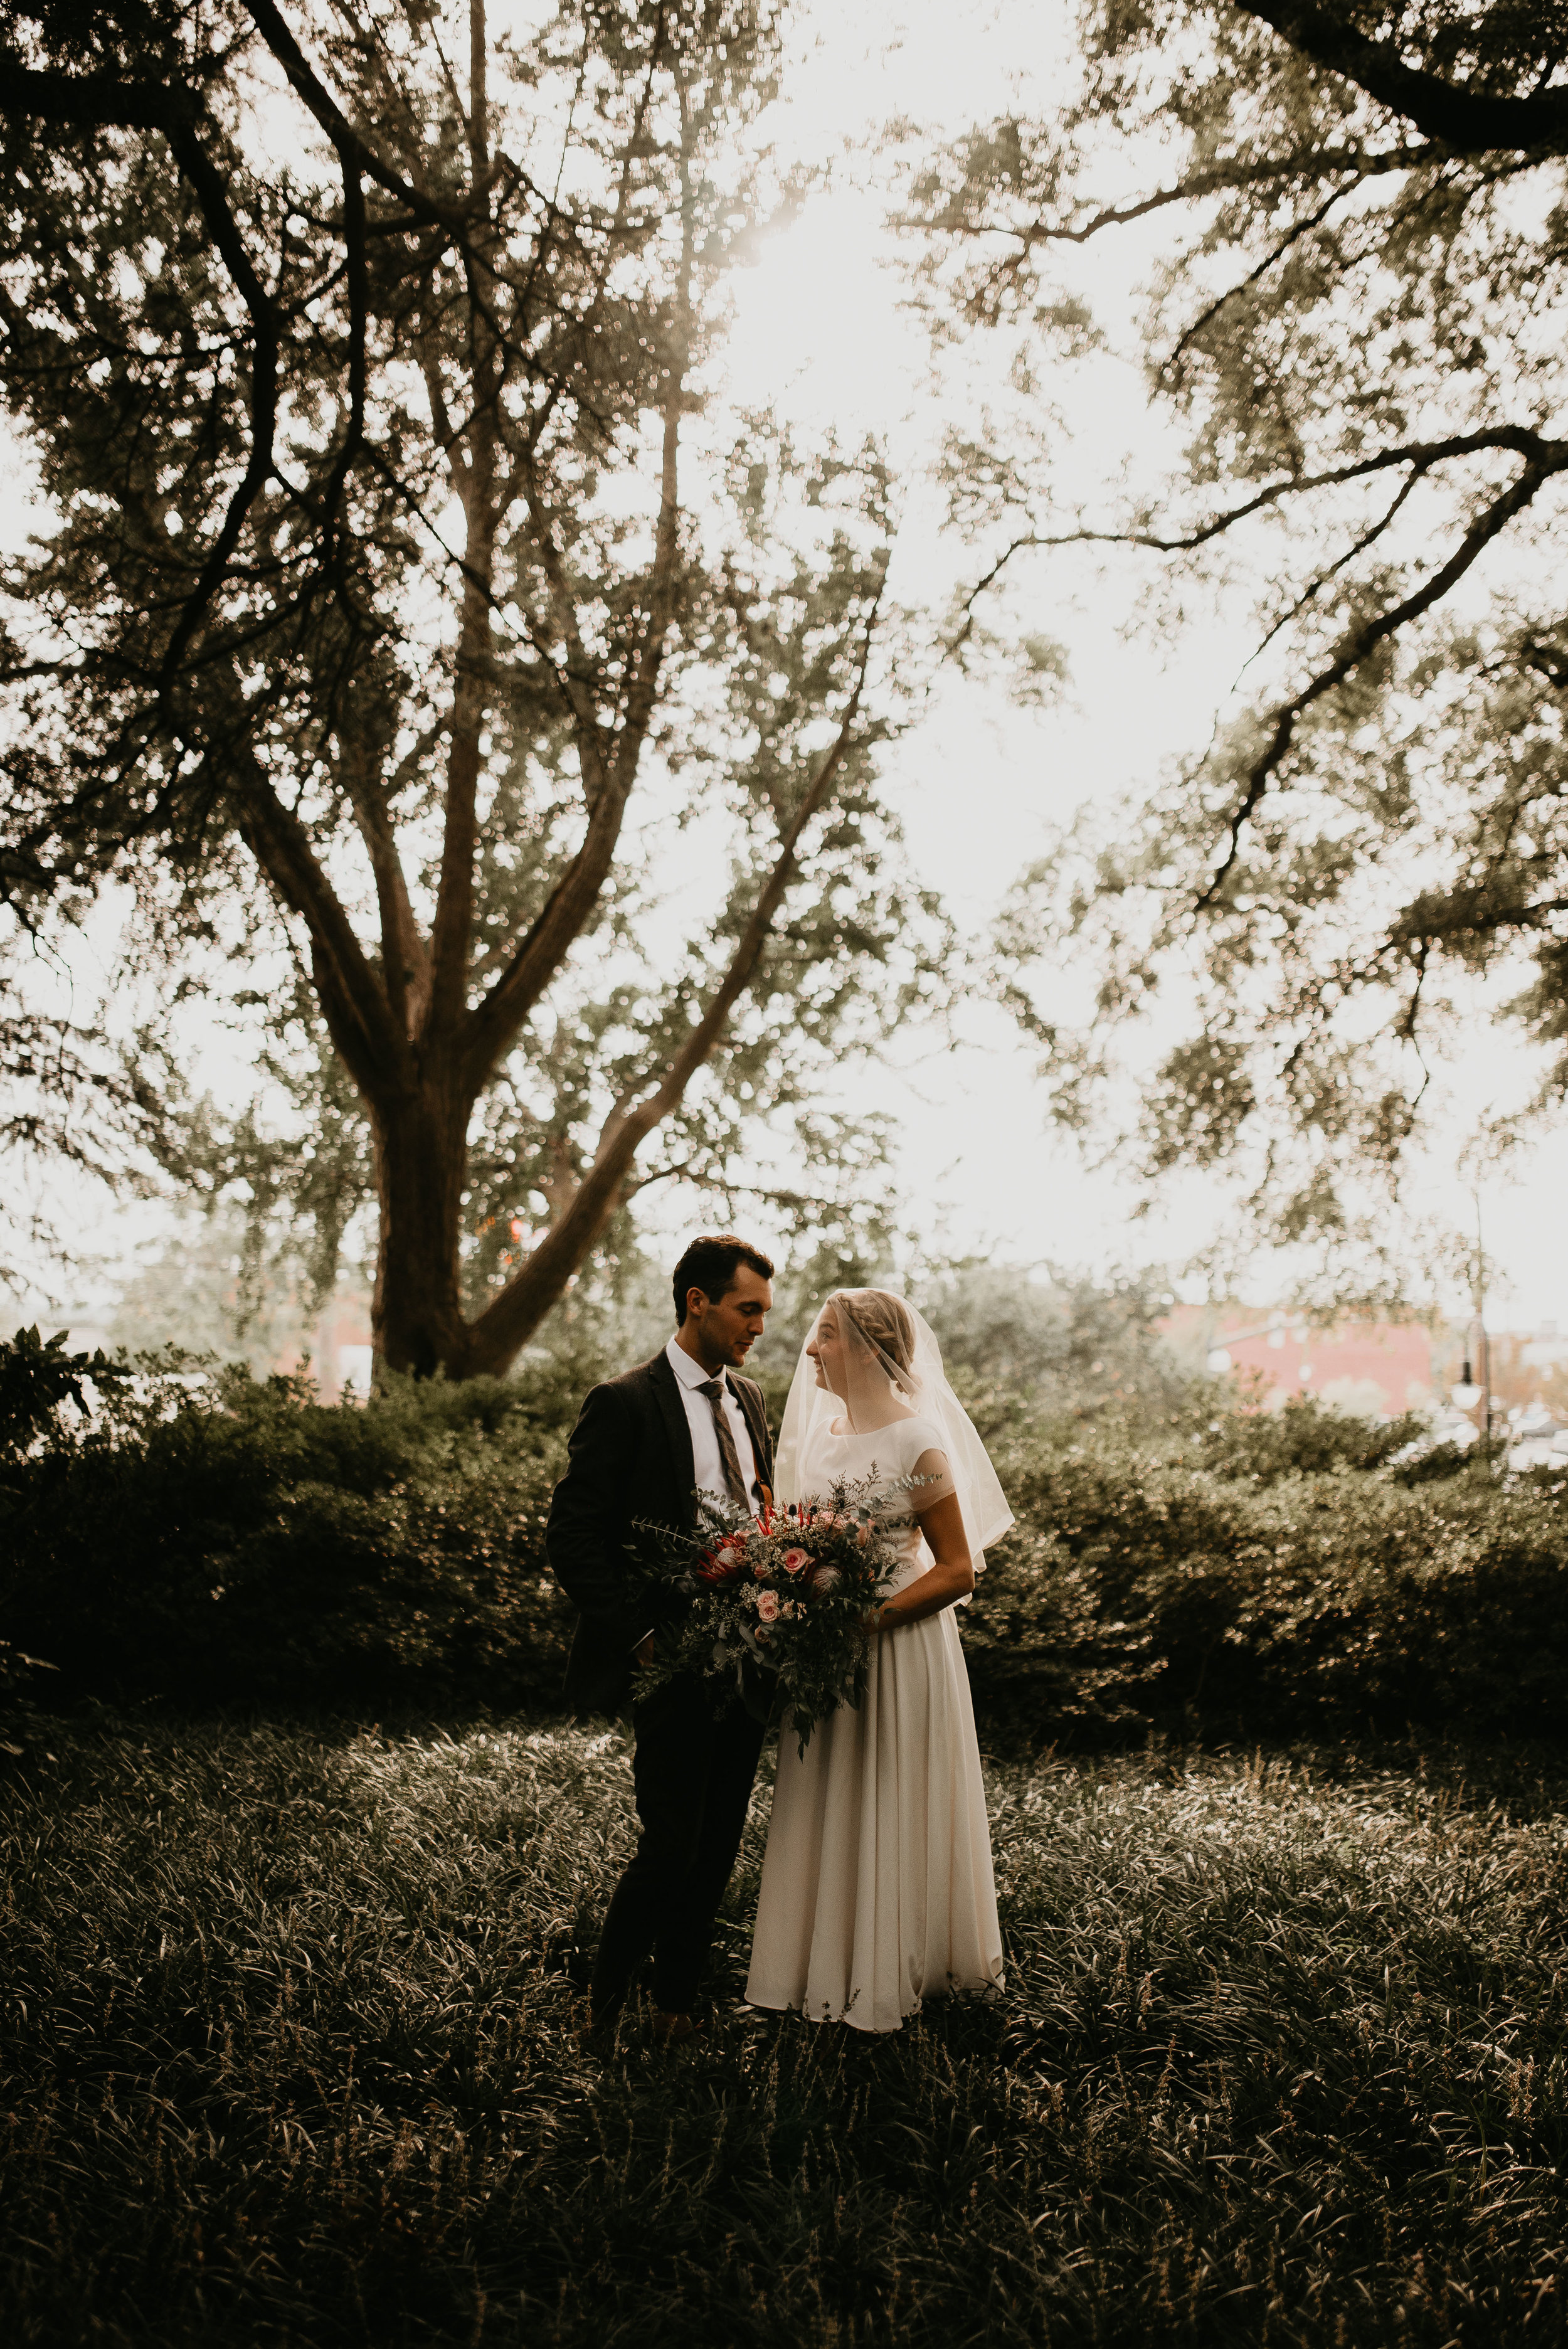 Bride and groom surrounded by greenery in Columbia, SC